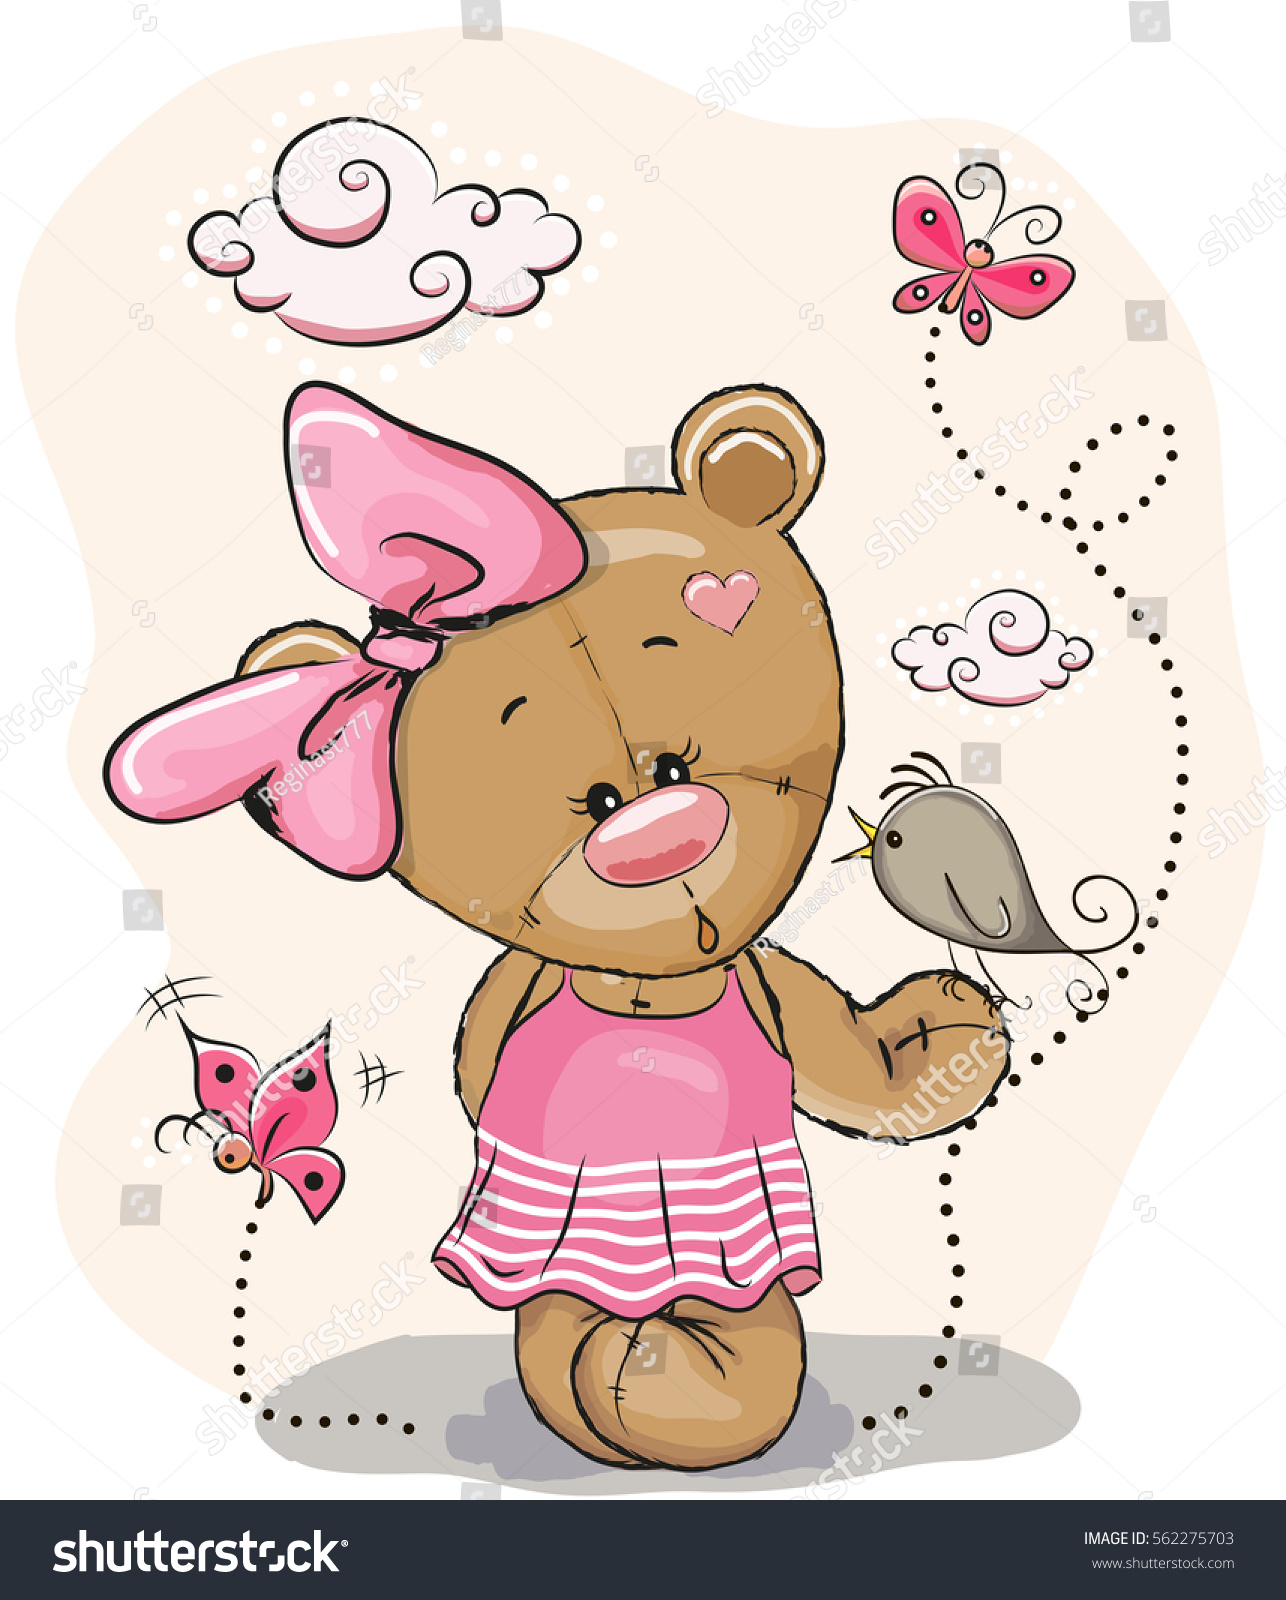 Pink Teddy Bear Stock Images RoyaltyFree Images